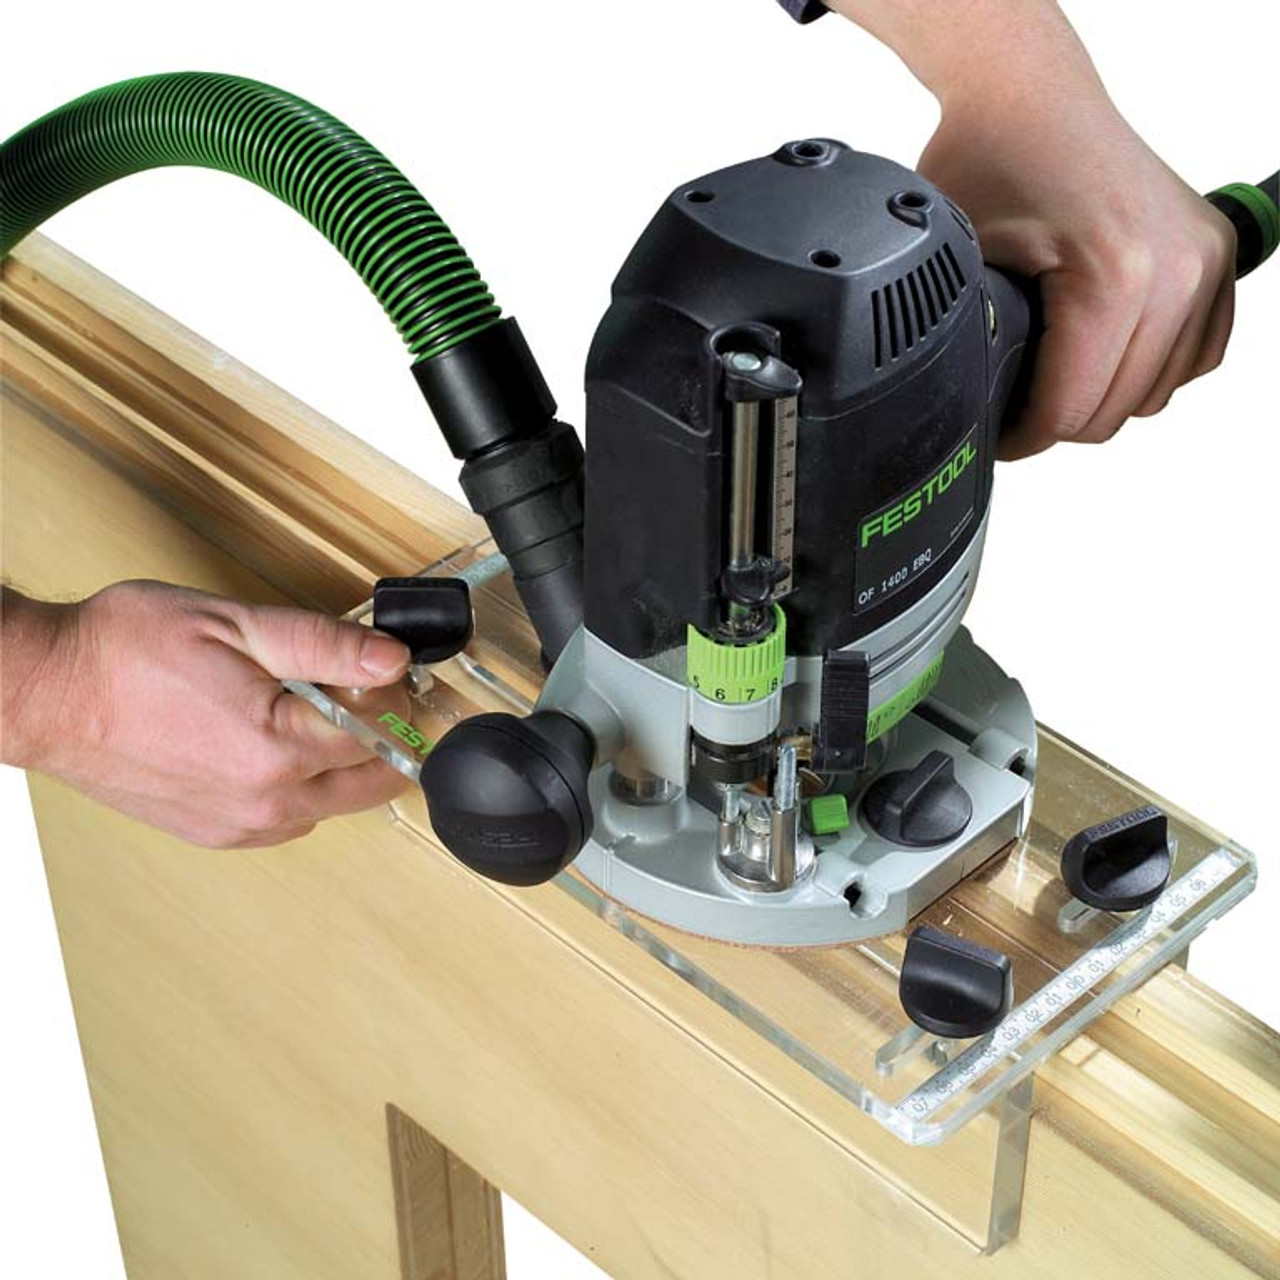 festool of 1400 eq router review